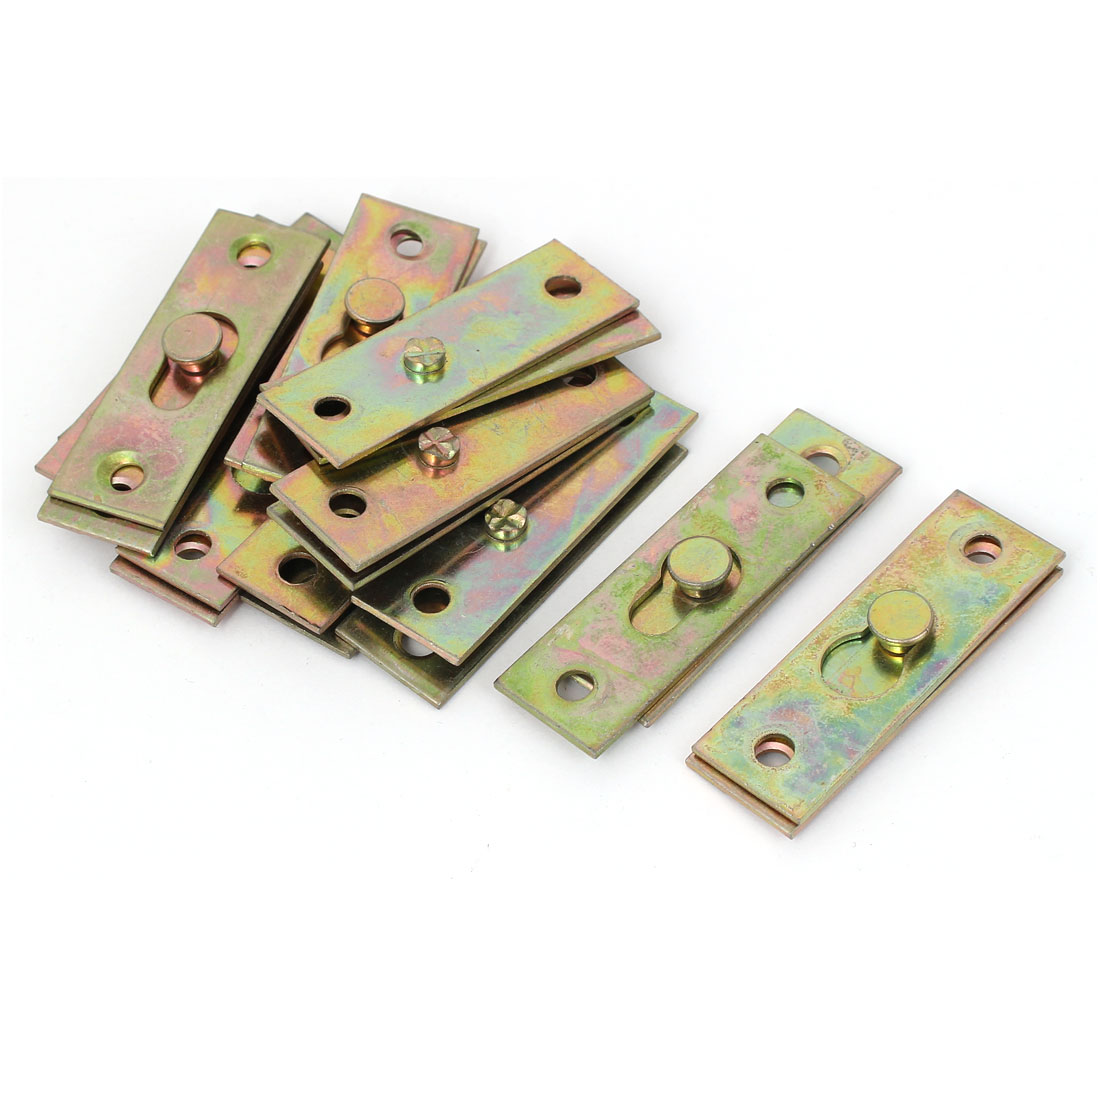 56mm x 19mm Picture Brackets Mirror Hanging Plates Connectors 10sets